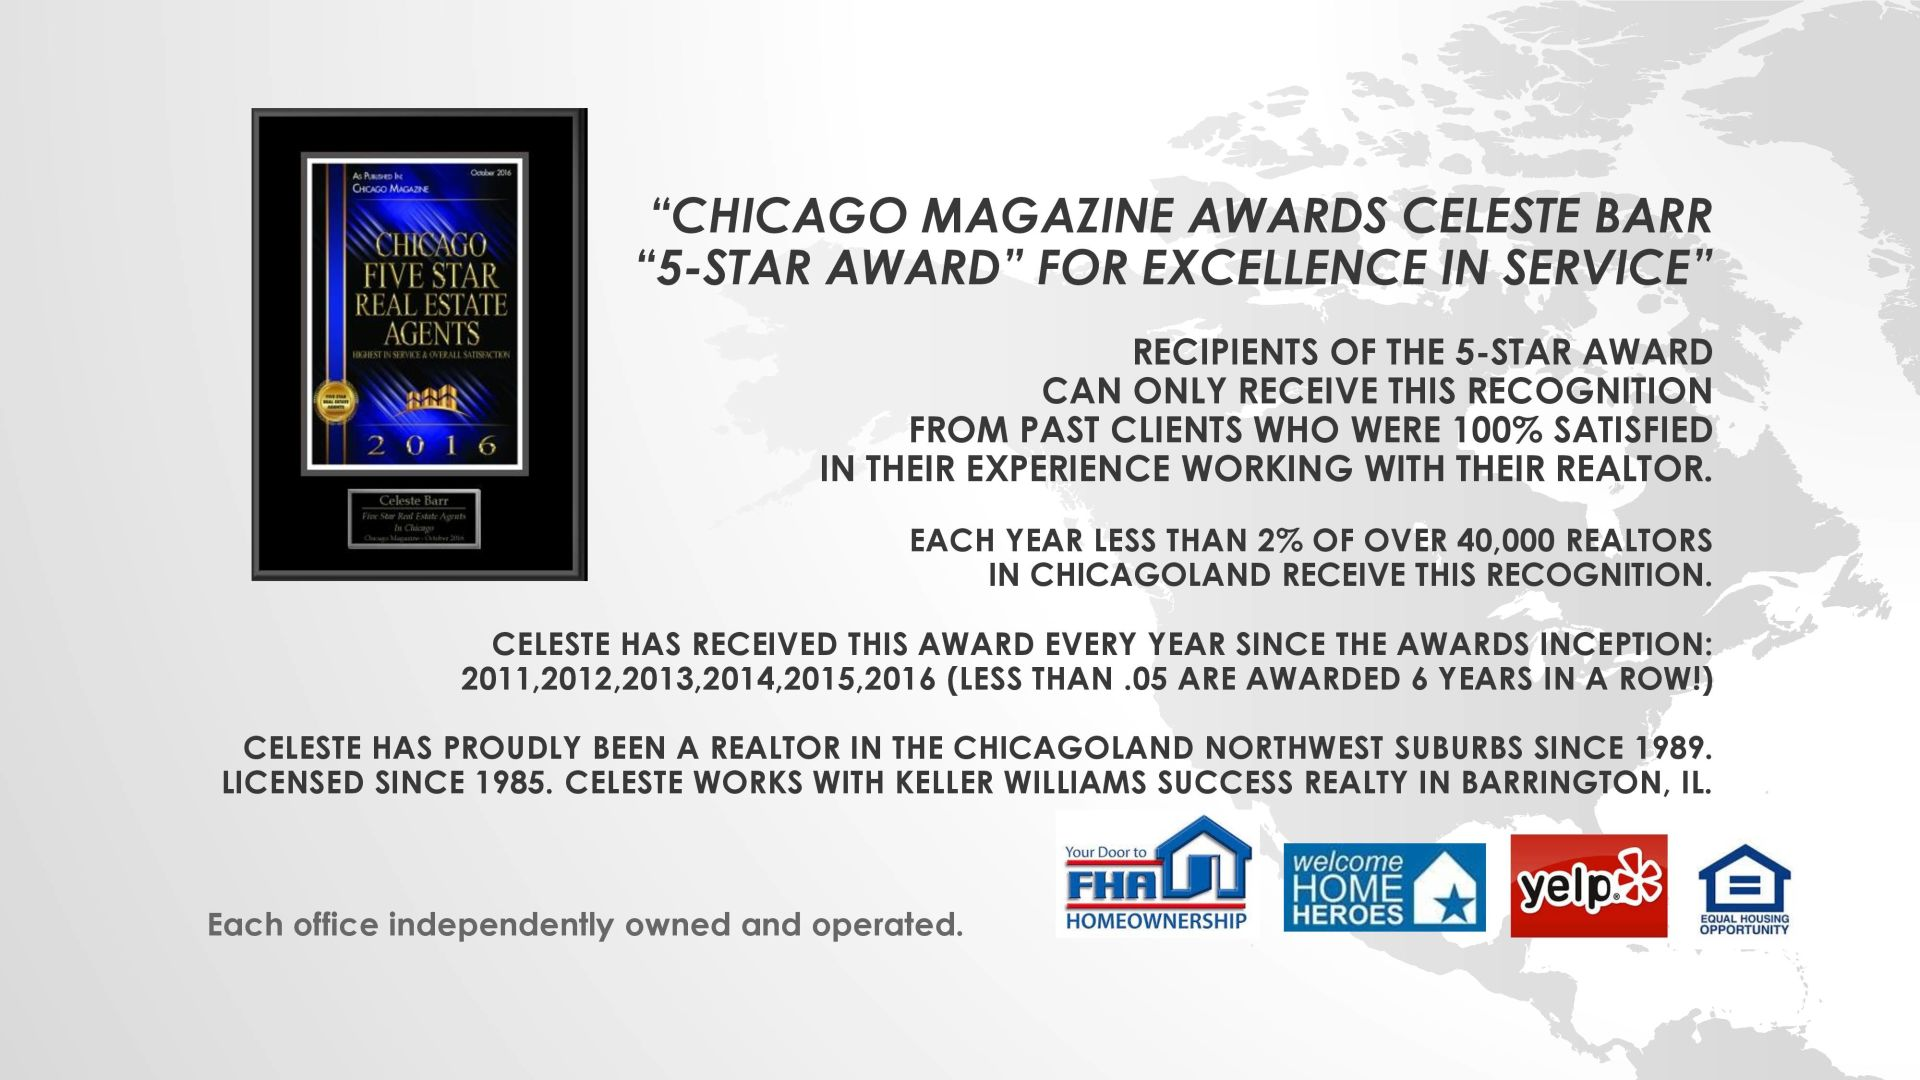 5-Star Award Winner – Chicago Magazine